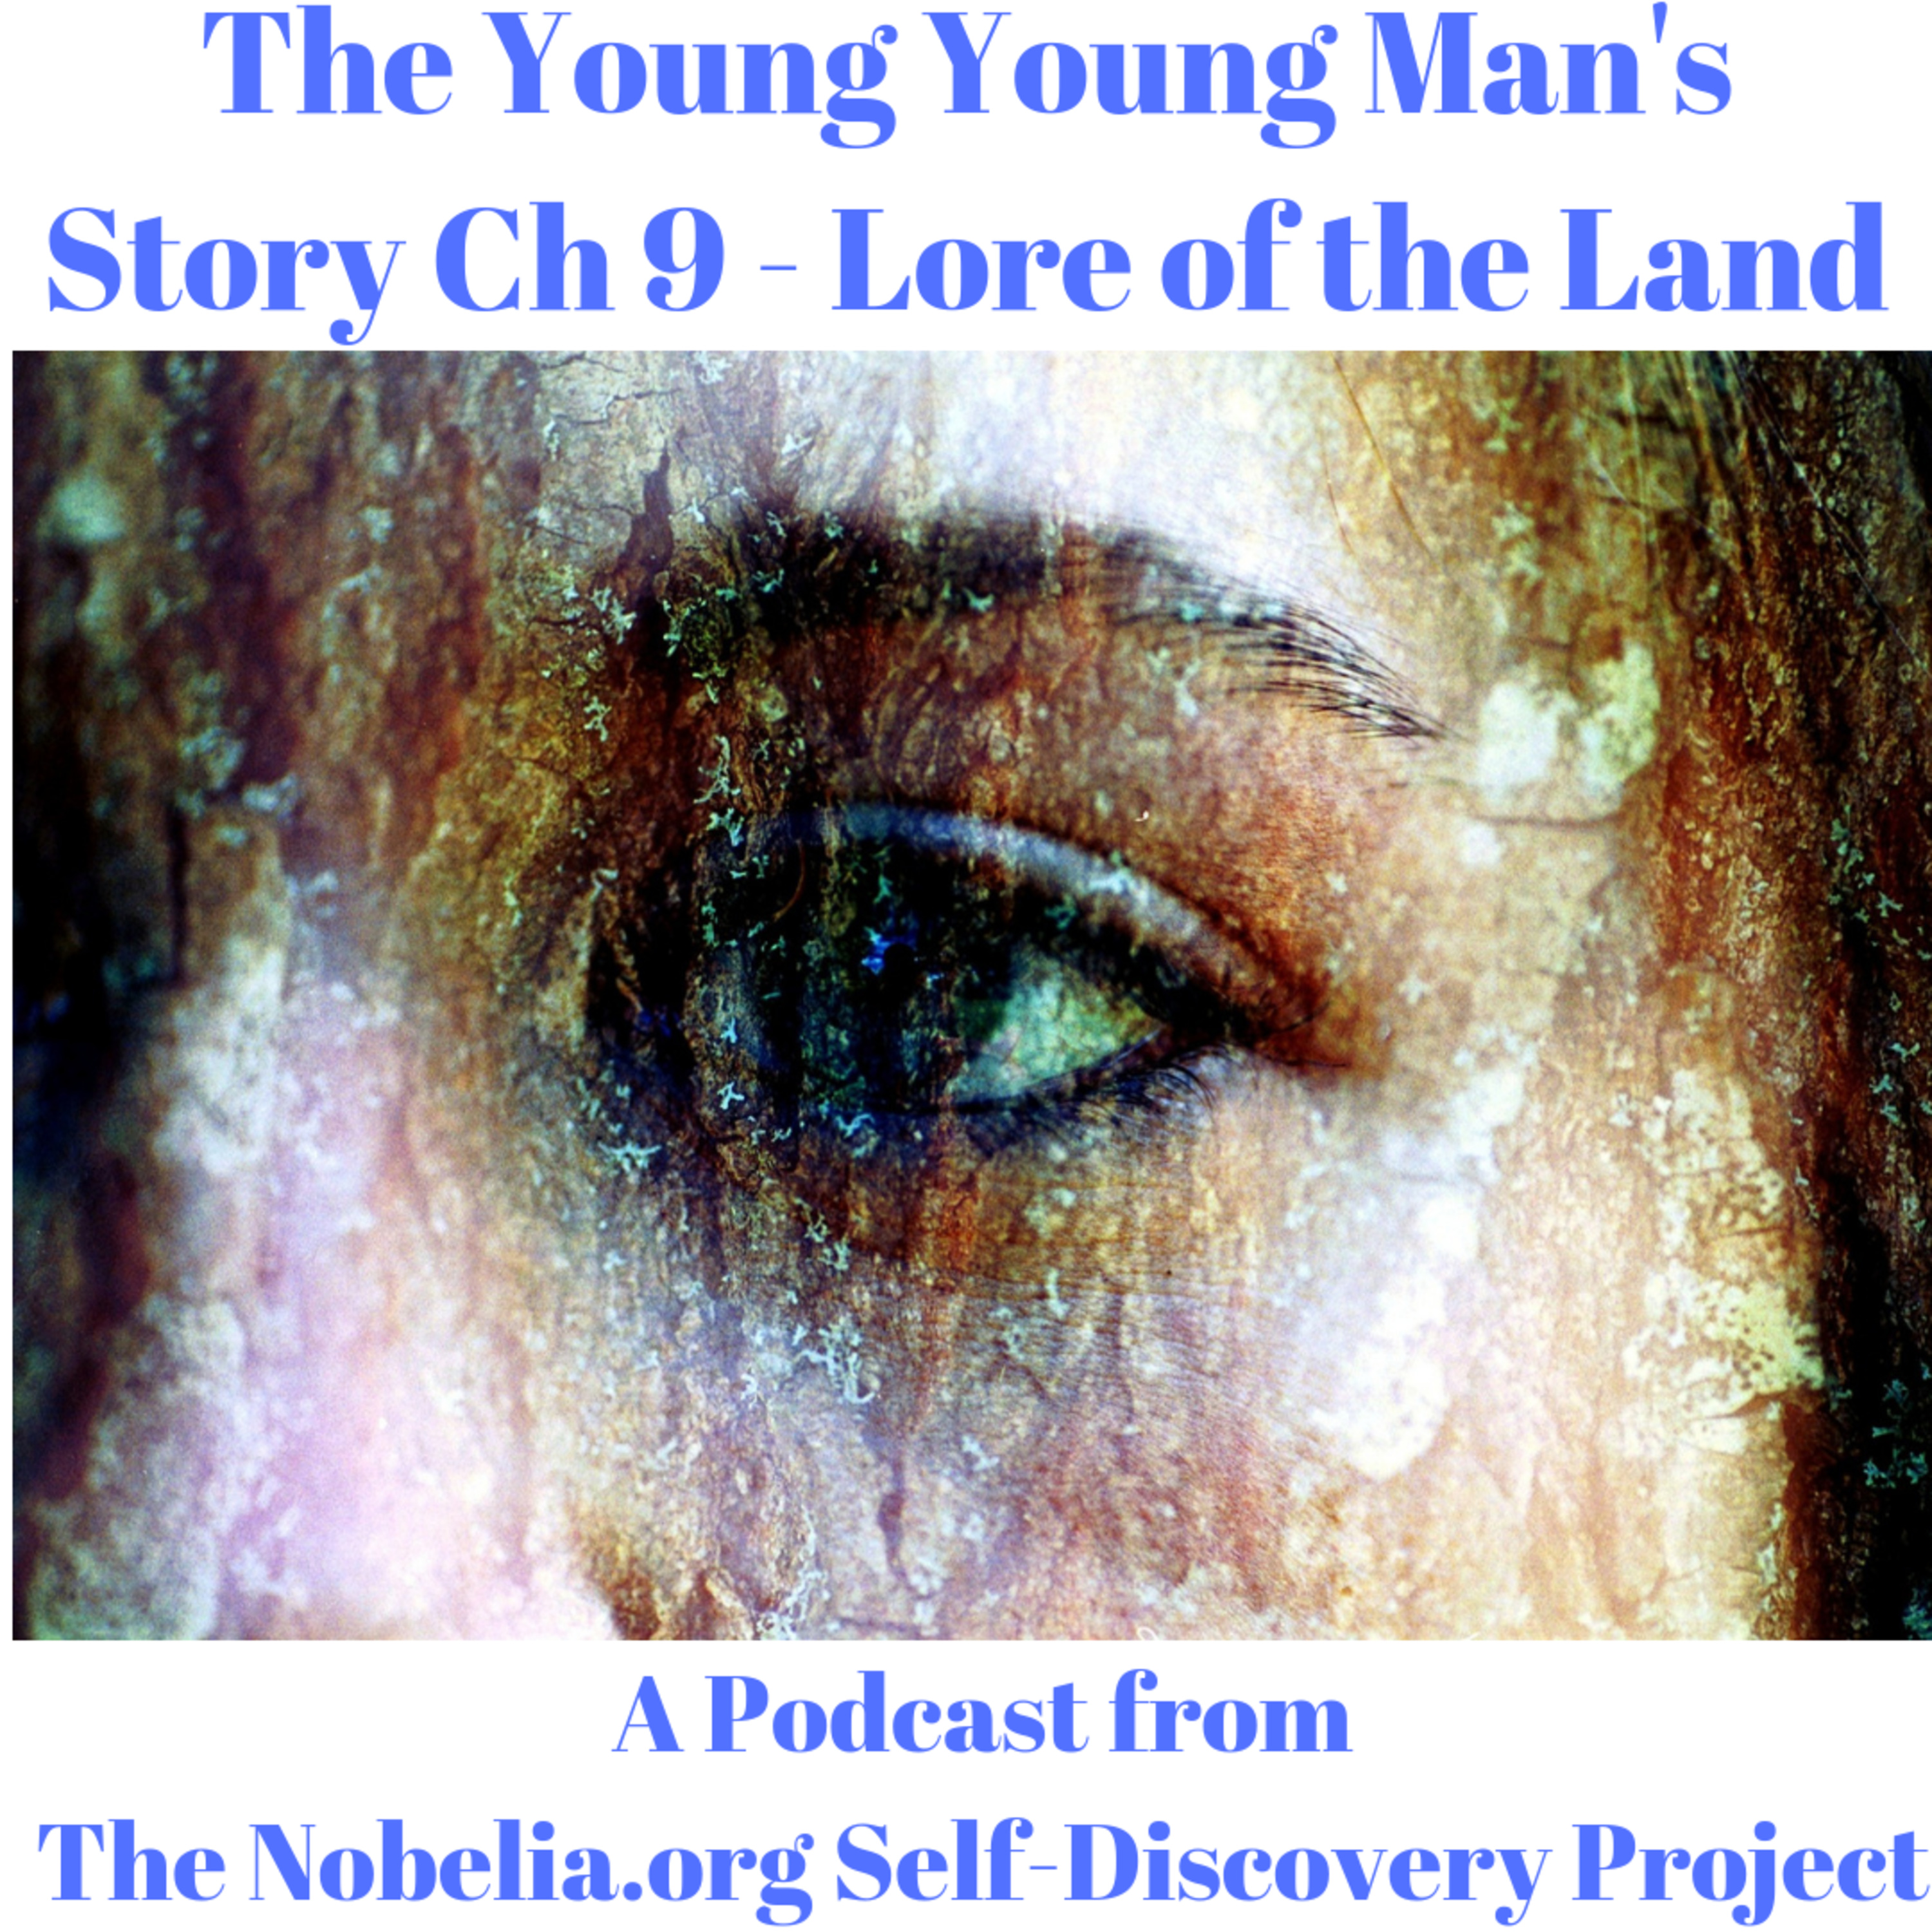 The Young Young Man's Story Ch 9 - Lore of the Land